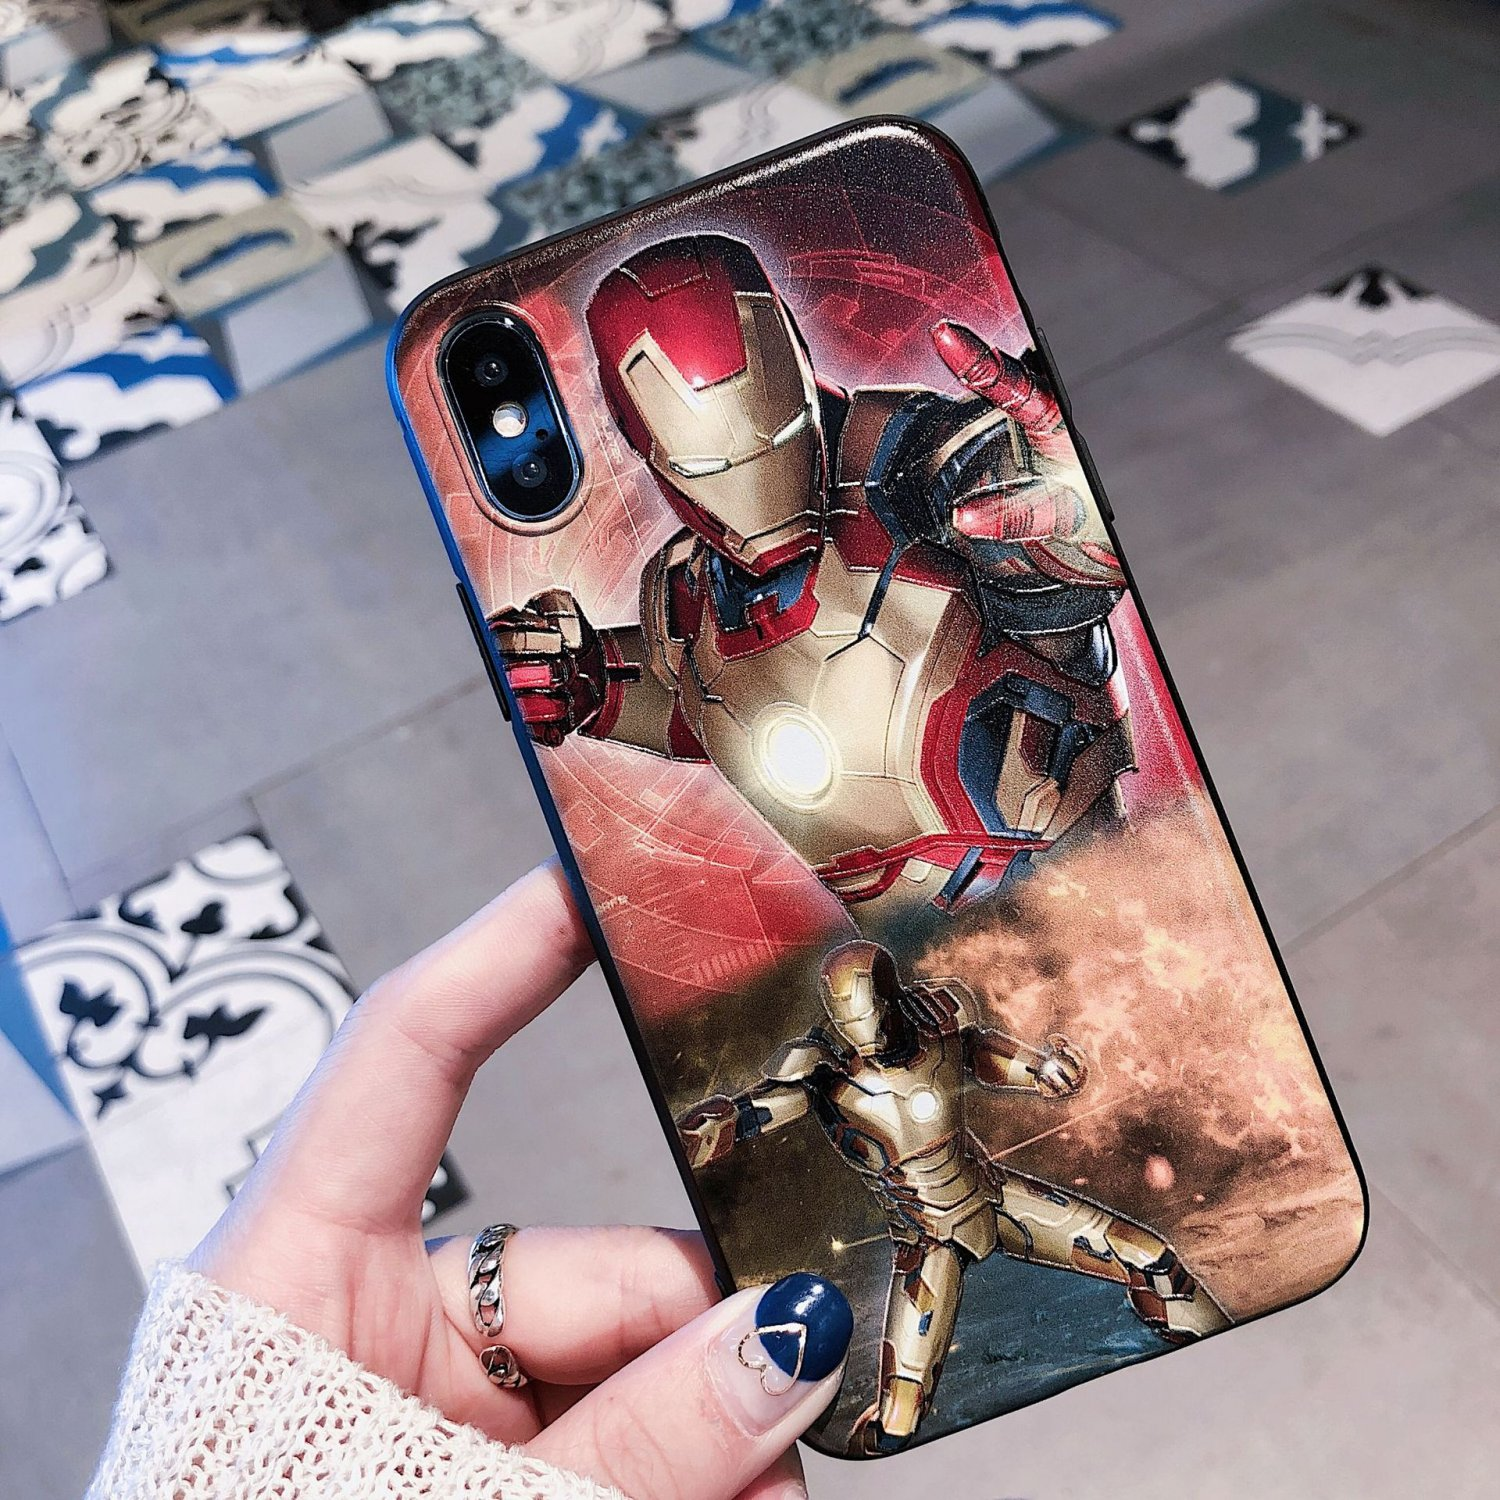 2018 Avengers Infinity War iPhone 7 Plus Cases Iron Man iPhone 7 Plus Cases